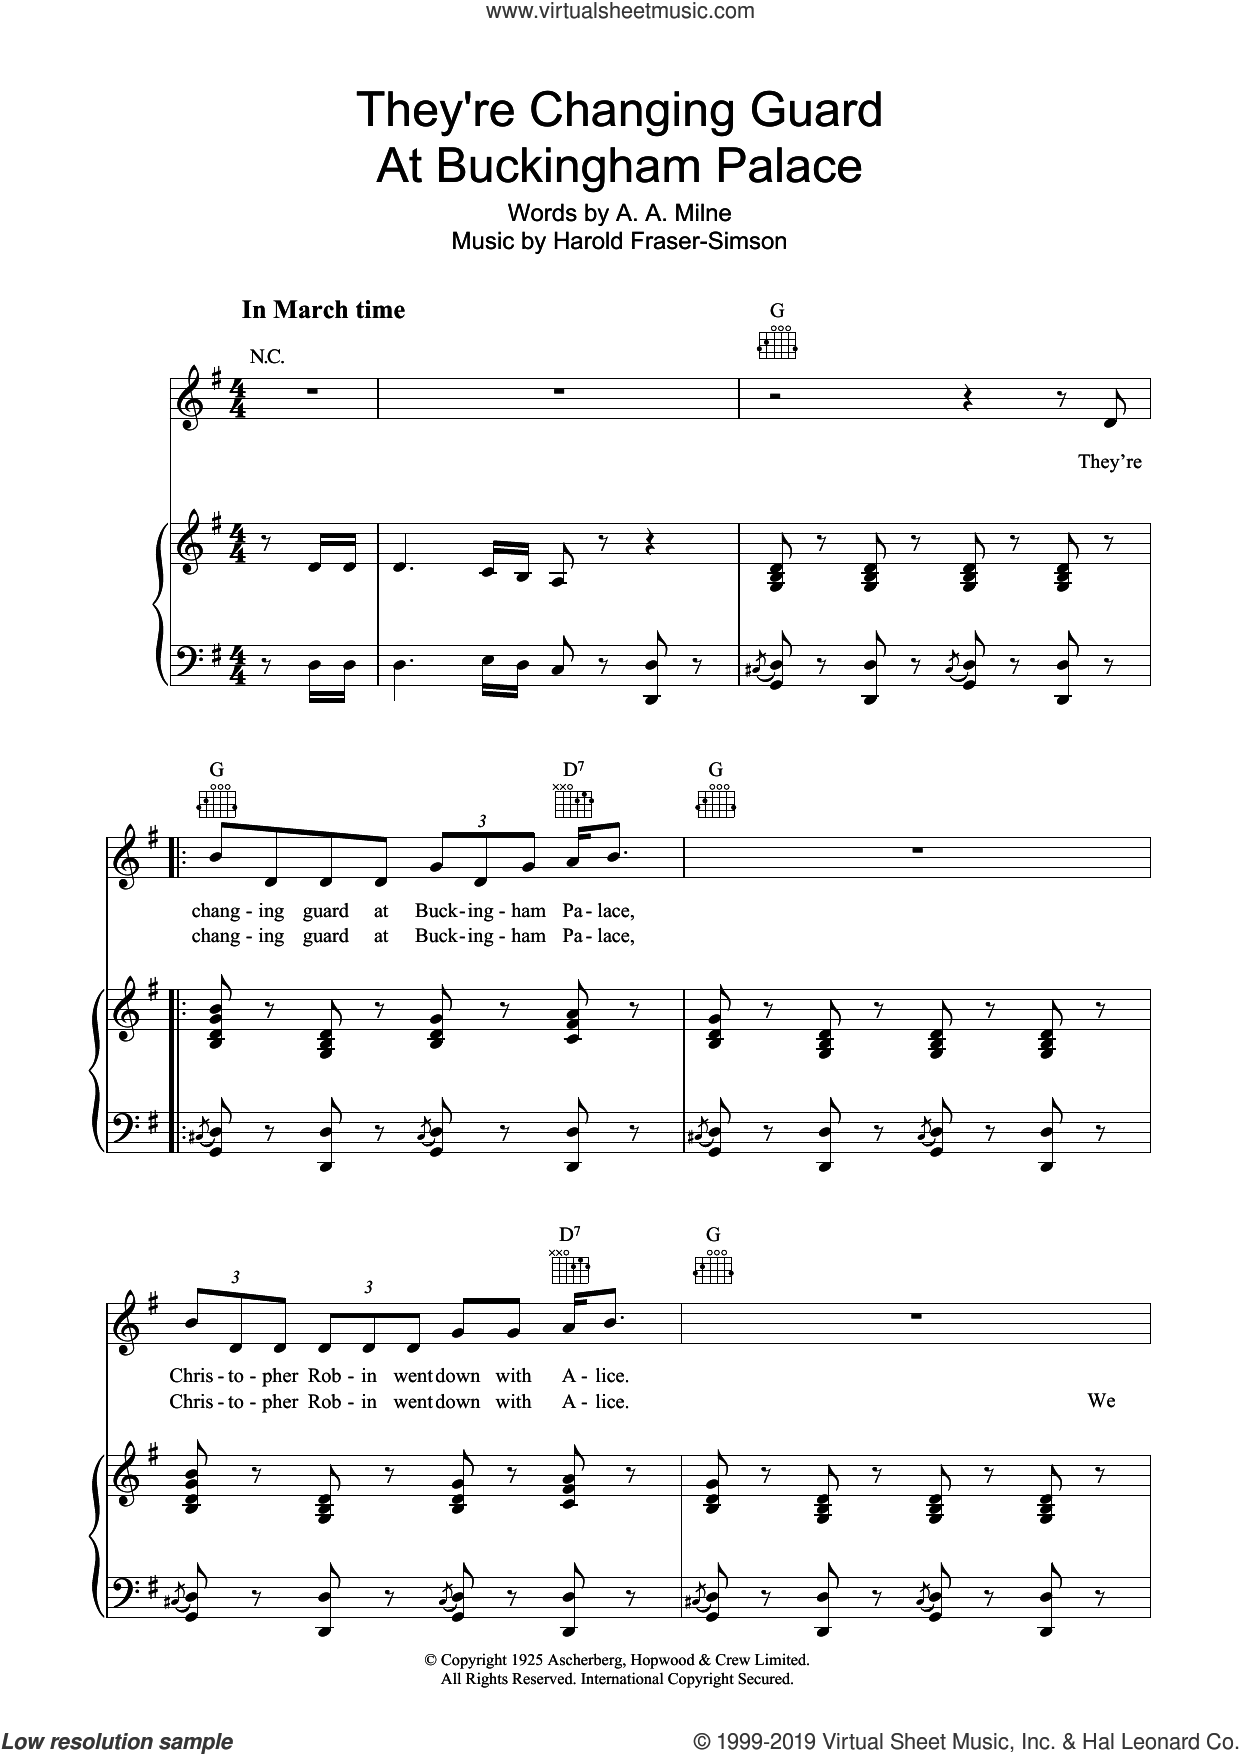 They're Changing Guard At Buckingham Palace sheet music for voice, piano or guitar by A.A. Milne and Harold Fraser Simson, intermediate skill level